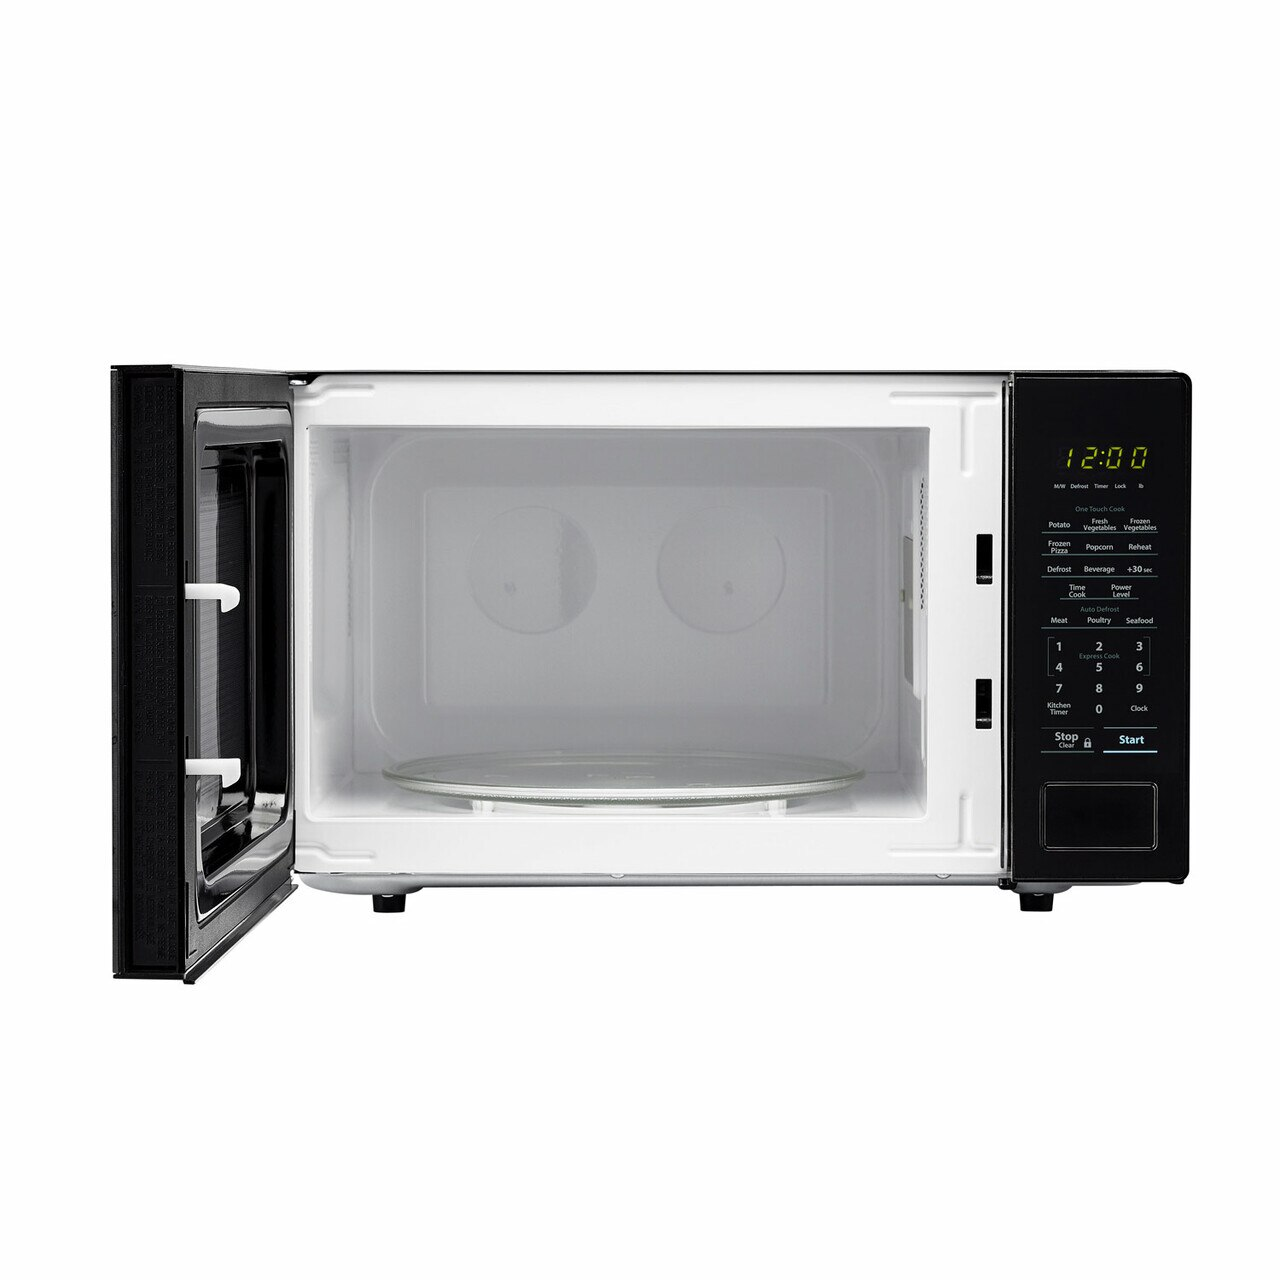 Sharp 1.1 cu. ft. Black Countertop Microwave (SMC1131CB) – front view with door open